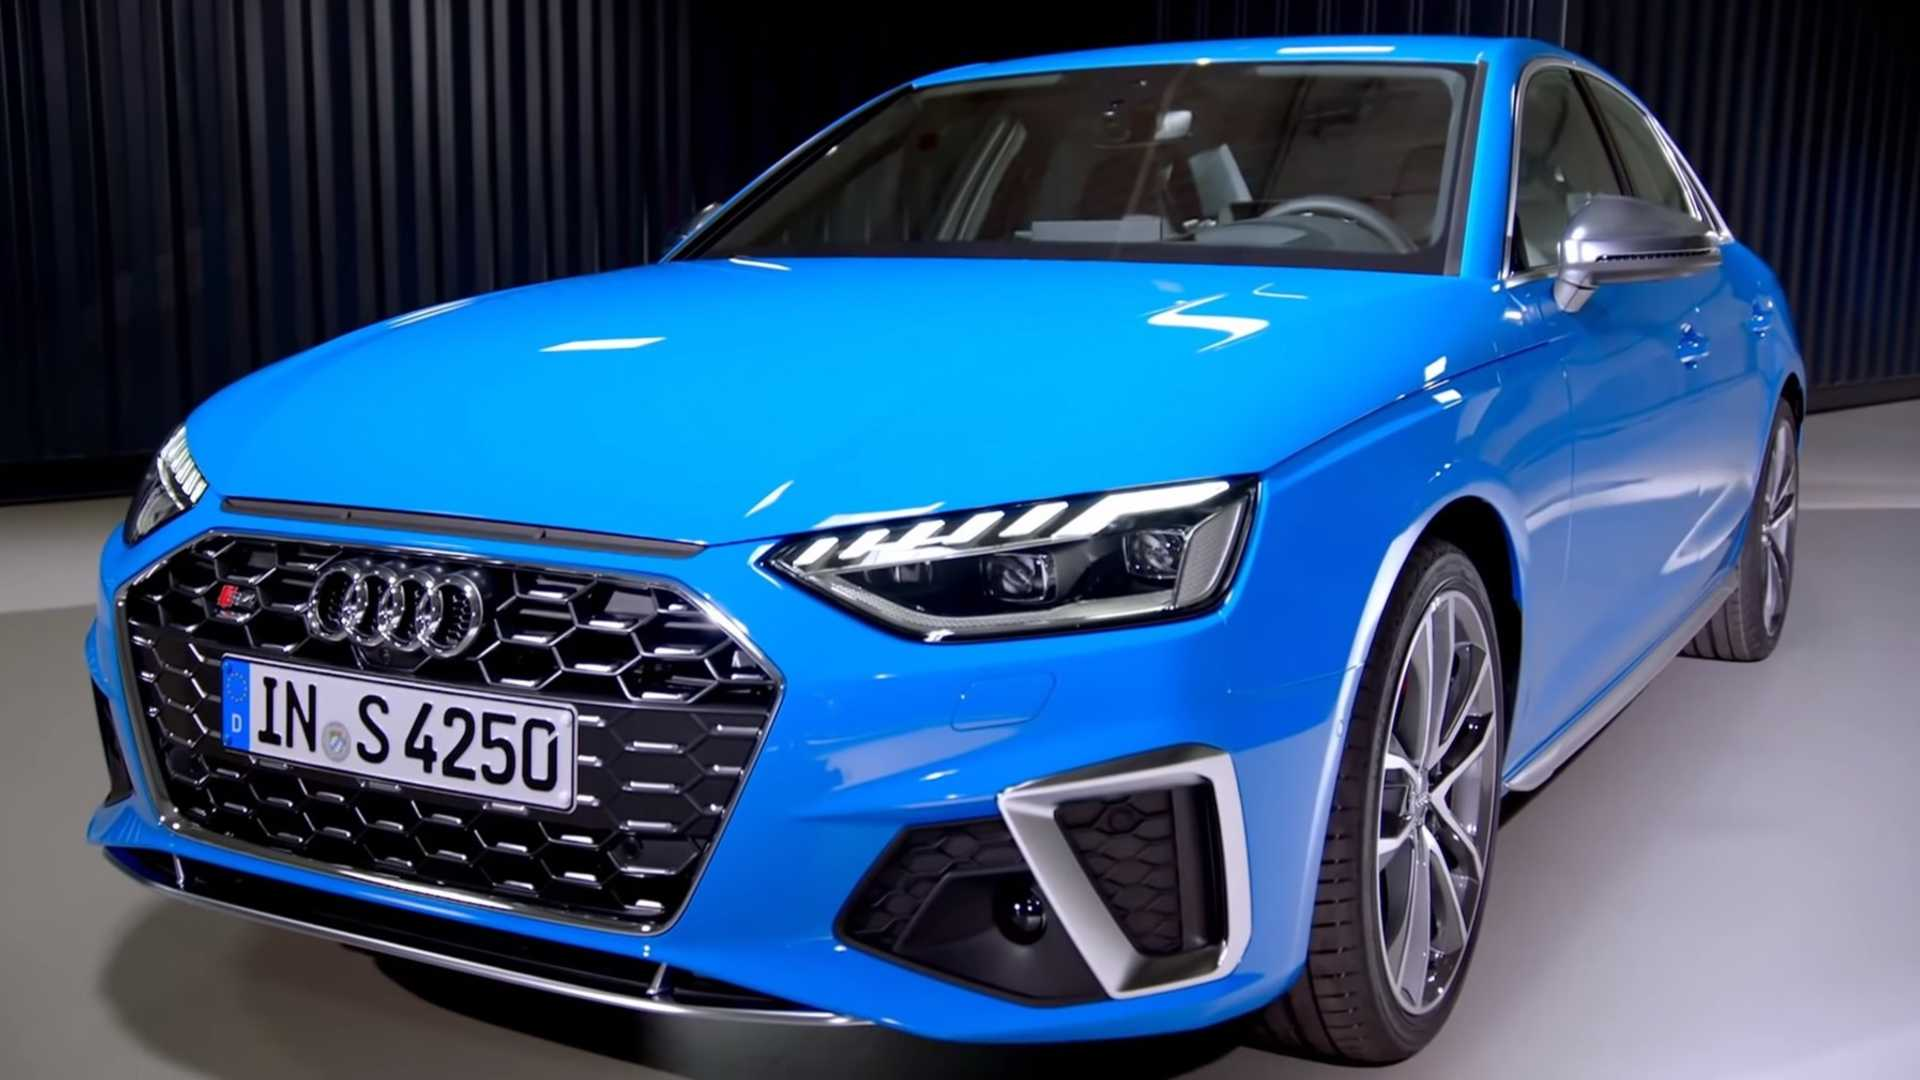 2020 Audi S4 Review.2020 Audi A4 S4 Design Changes Explained In Walkaround Video